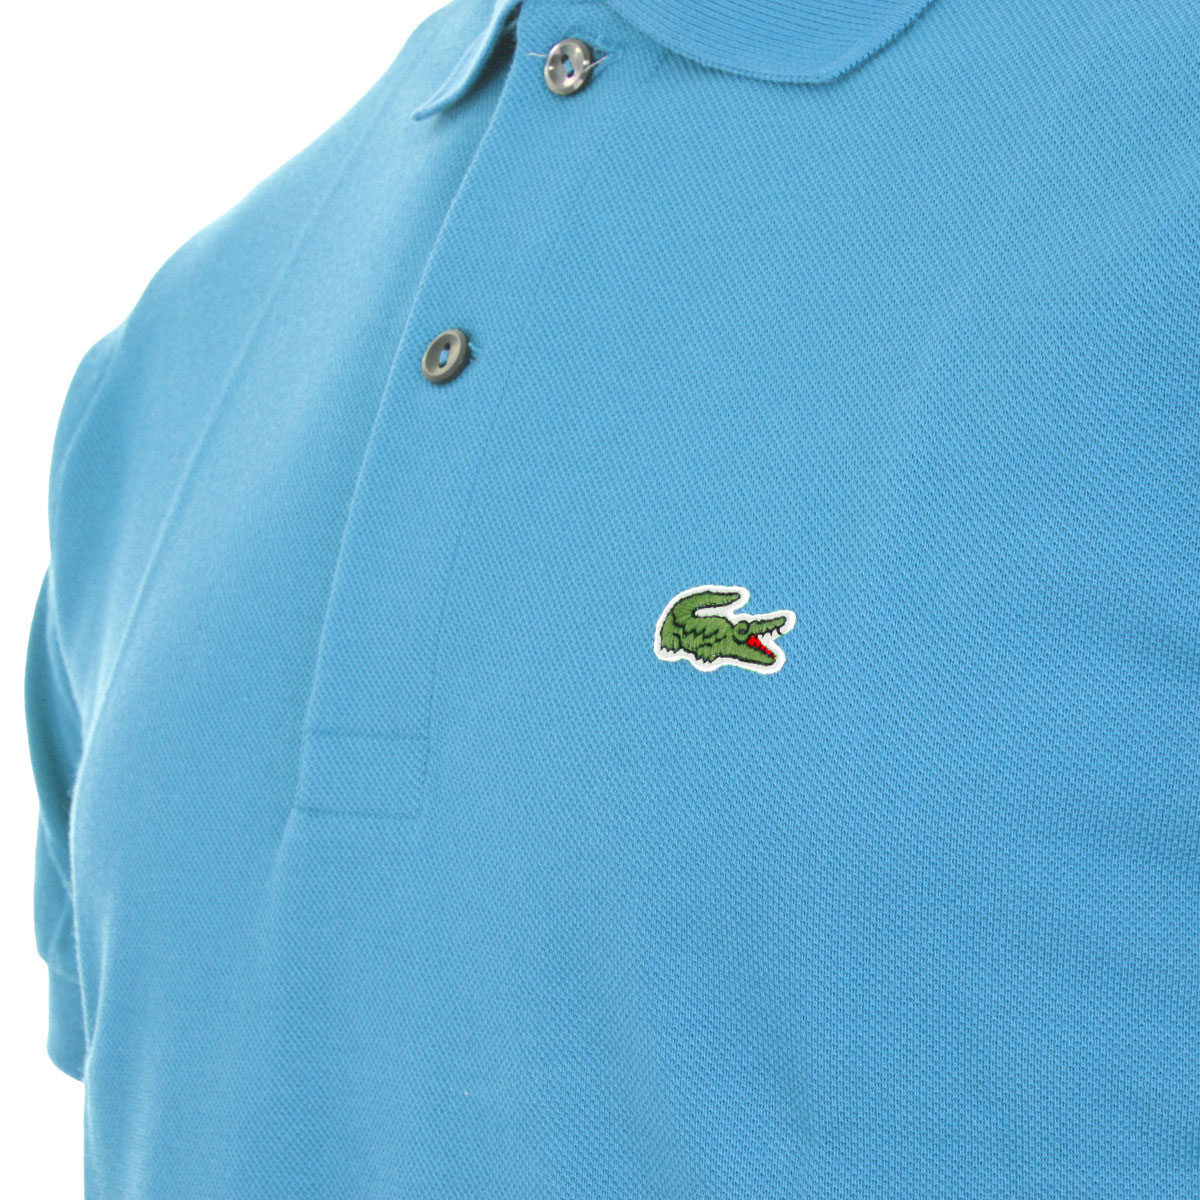 Lacoste-Mens-Classic-Cotton-L1212-Short-Sleeve-Polo-Shirt-31-OFF-RRP thumbnail 6